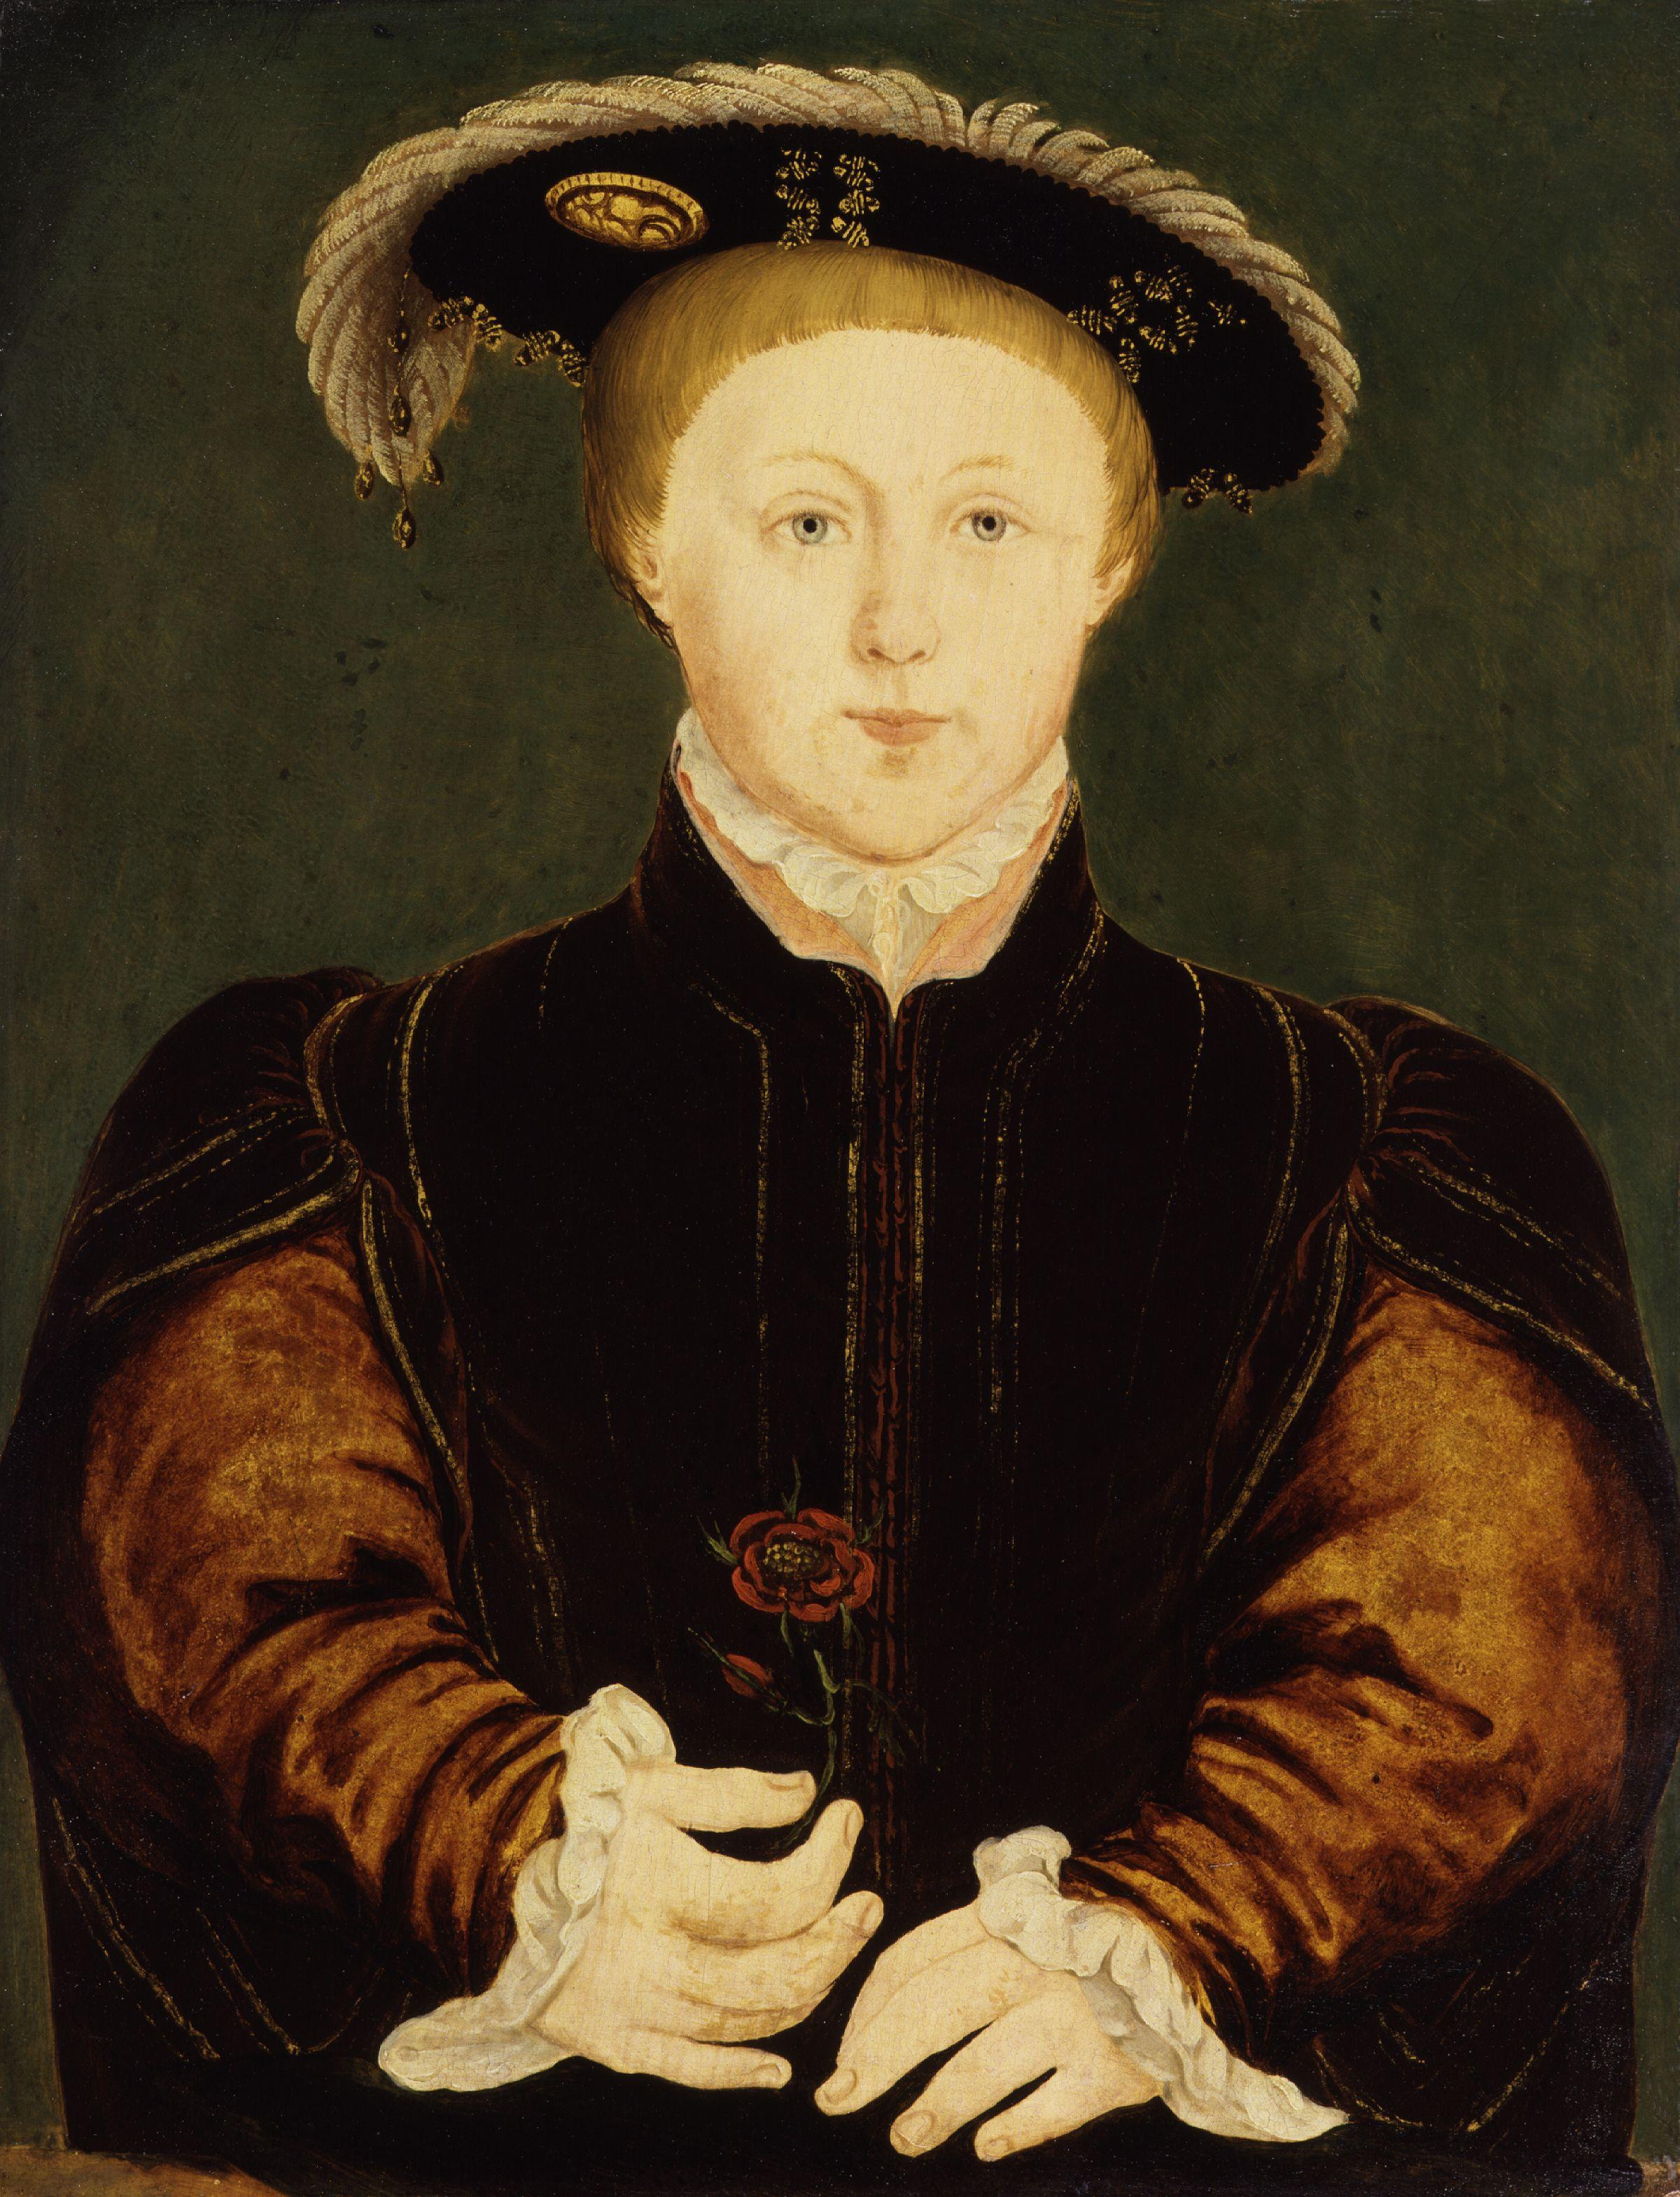 King Edward VI (National Portrait Gallery, London)